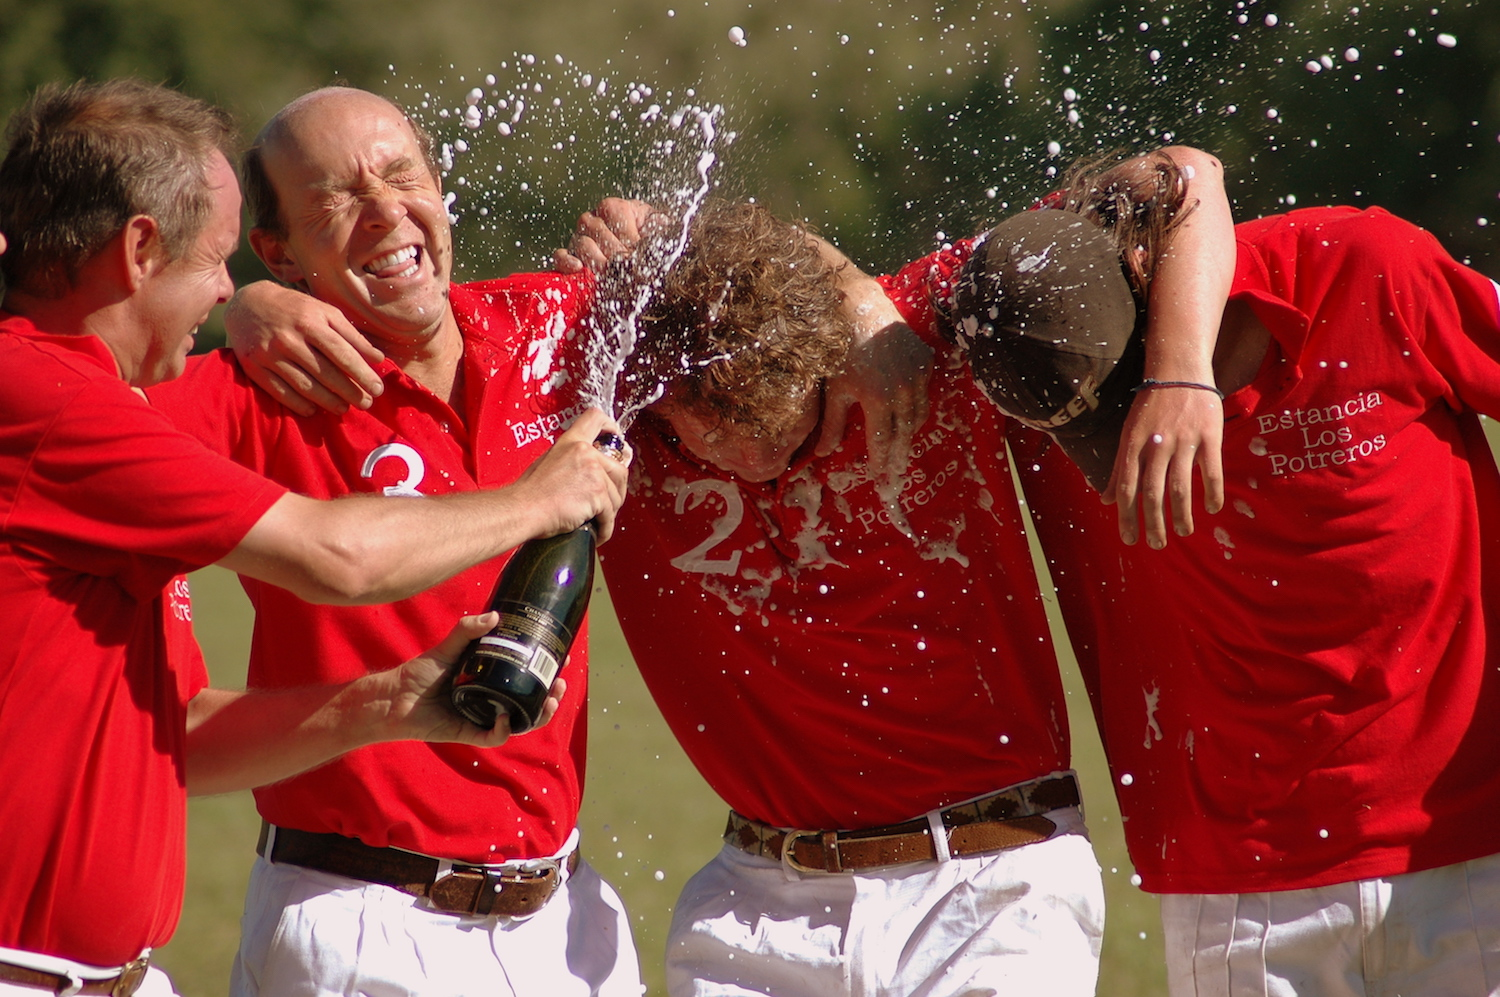 Polo Players Celebrating